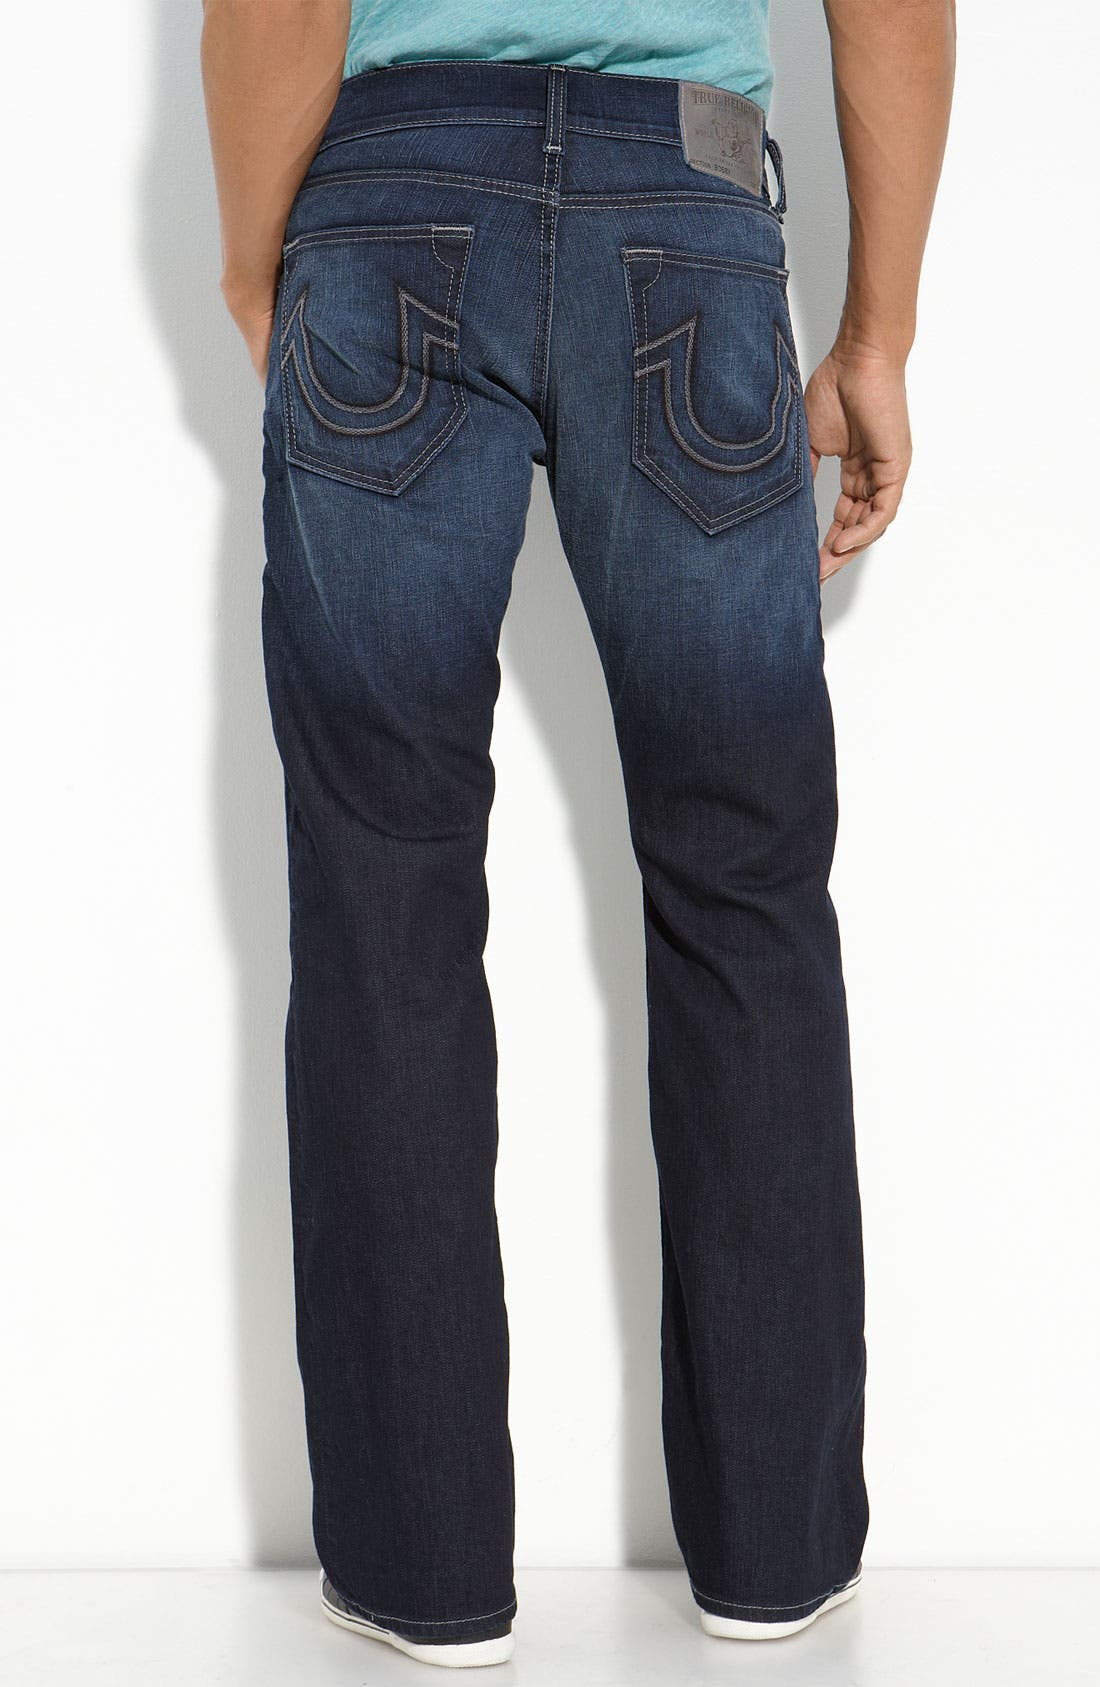 Main Image - True Religion Brand Jeans 'Danny' Bootcut Jeans (Franklin)